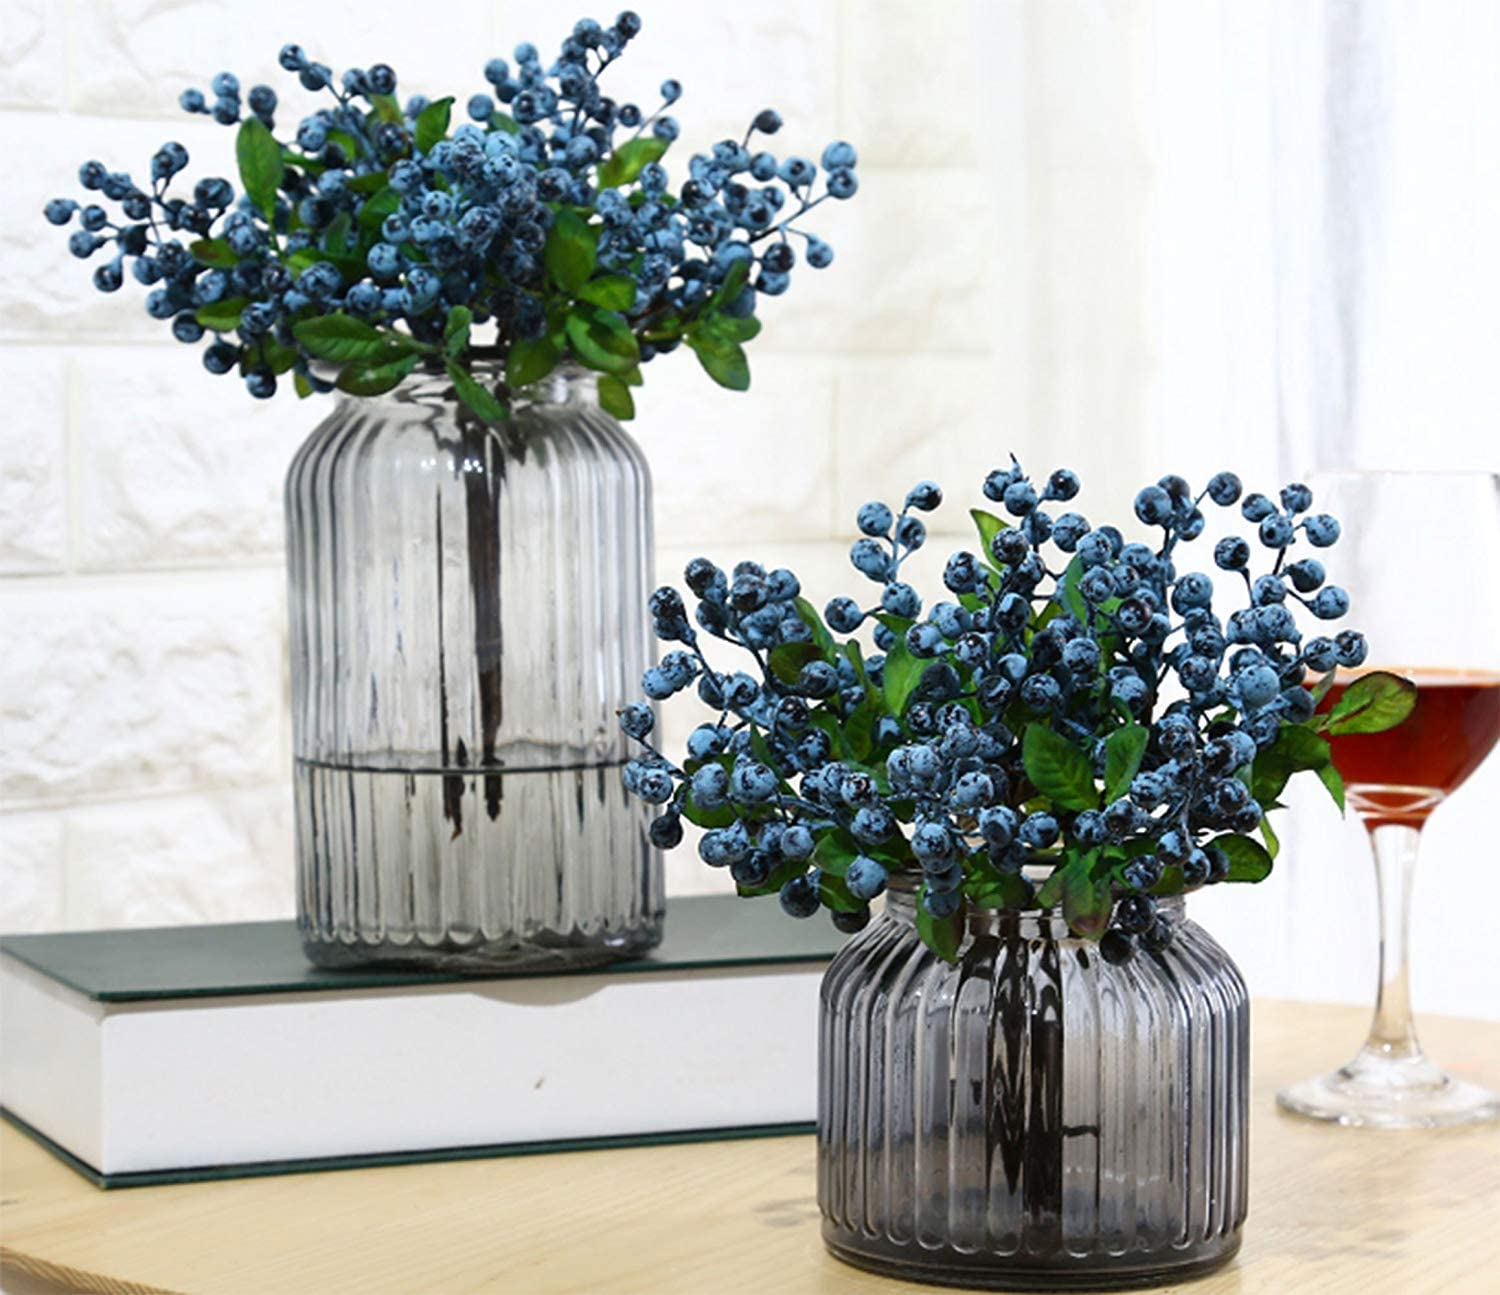 Mistari 20 Pcs Blue Plastic Artificial Flowers California Berries Blueberry Fruit Fake Silk Flowers Home Decorative Party Wedding (Blue)